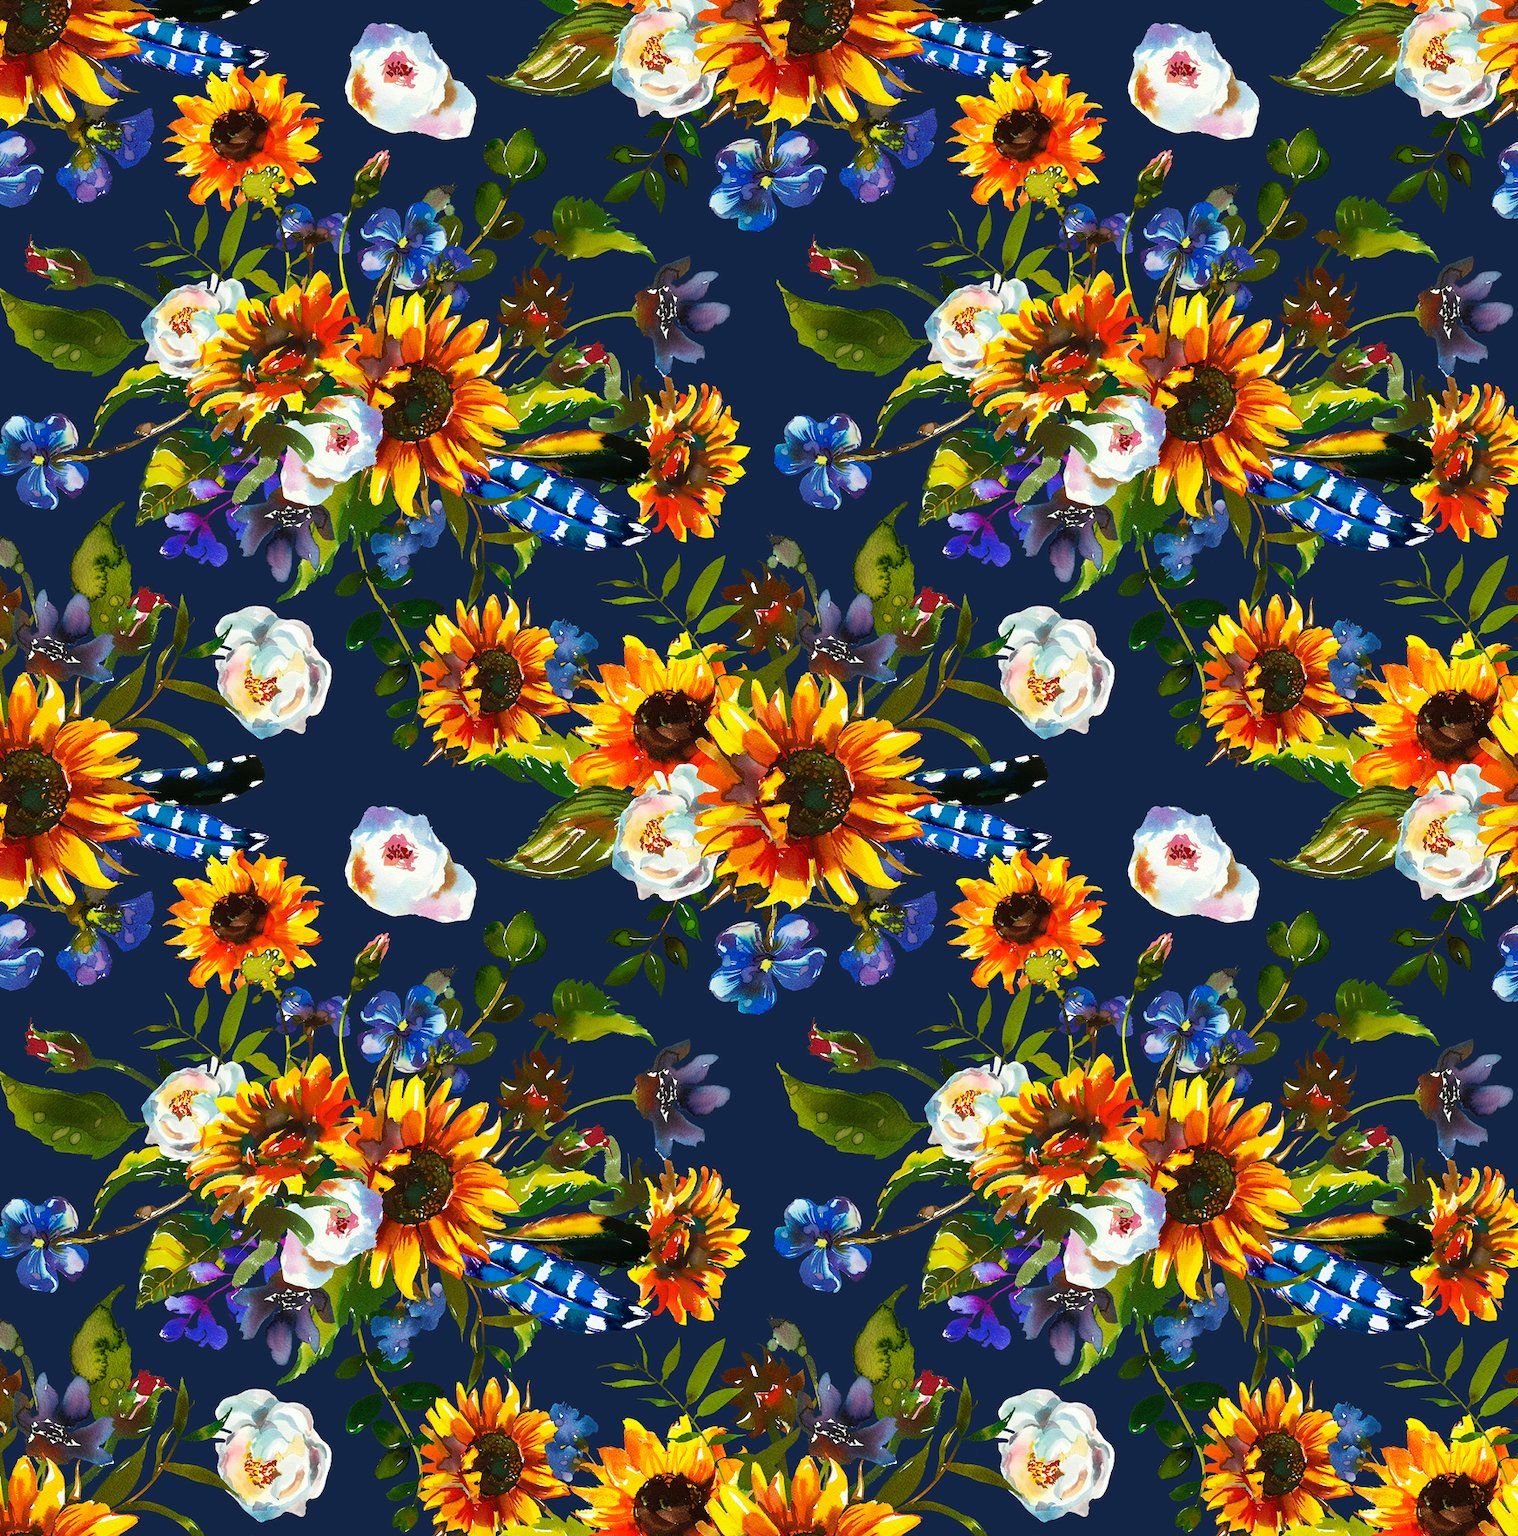 Sunflower Fabric Floral Fabric Flower Fabric Cotton Fabric Knit